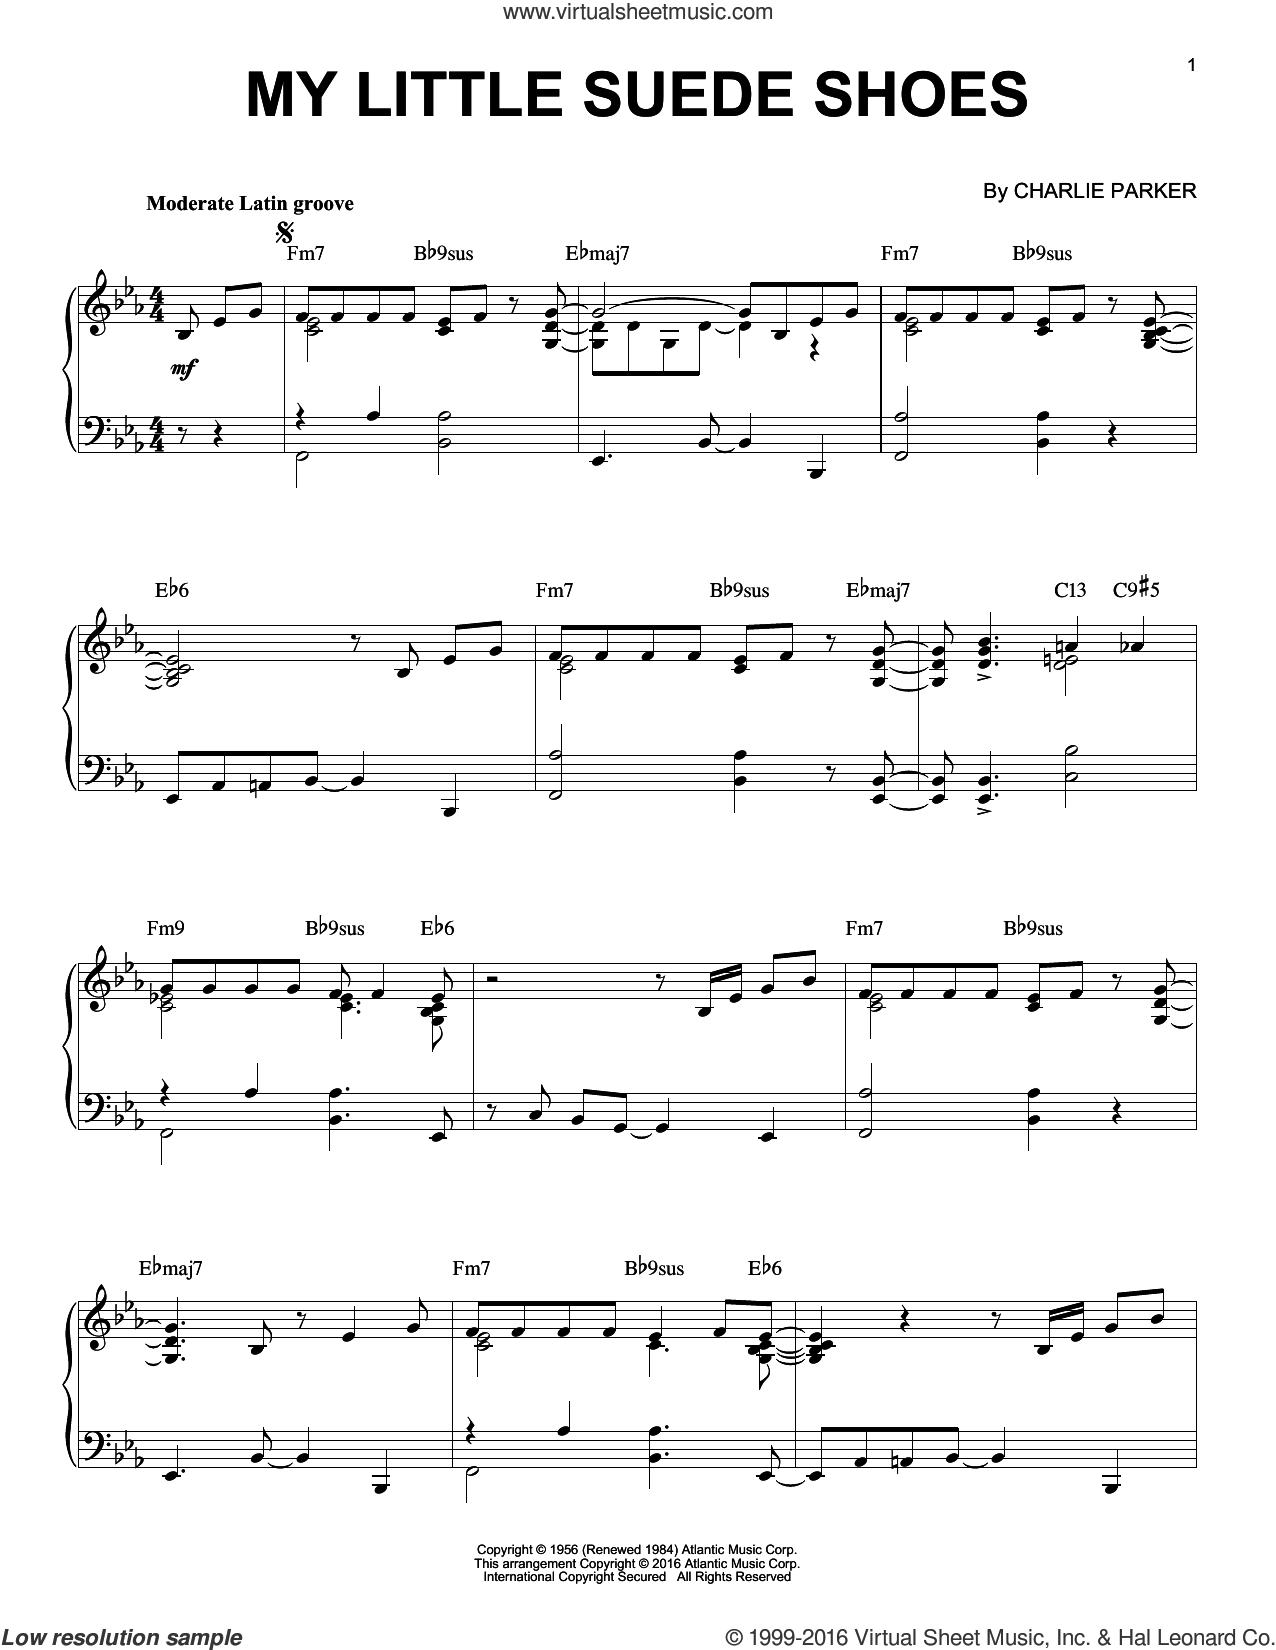 My Little Suede Shoes (arr. Brent Edstrom) sheet music for piano solo by Charlie Parker, intermediate skill level